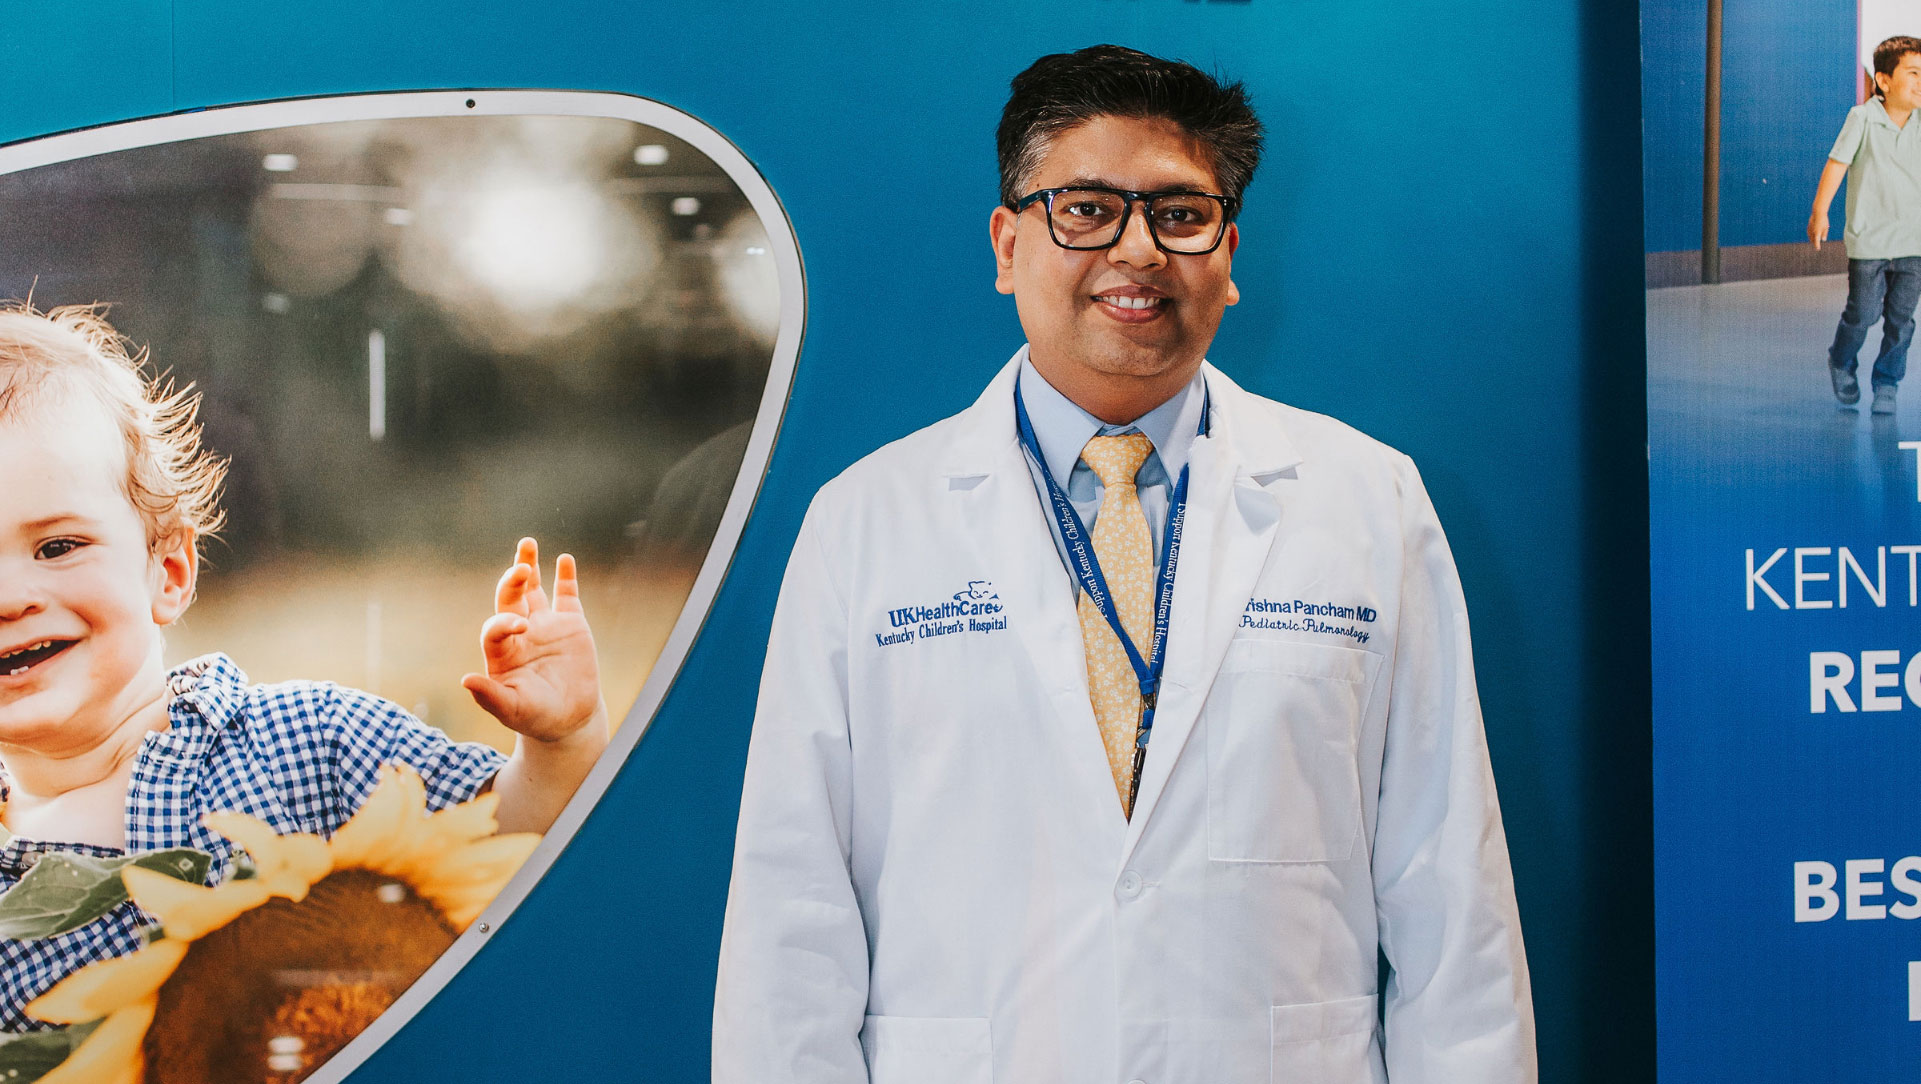 Dr. Krishna Pancham, a middle-aged south Asian man with black hair and black-rimmed glasses wearing a white doctor's coat, smiles at the camera.